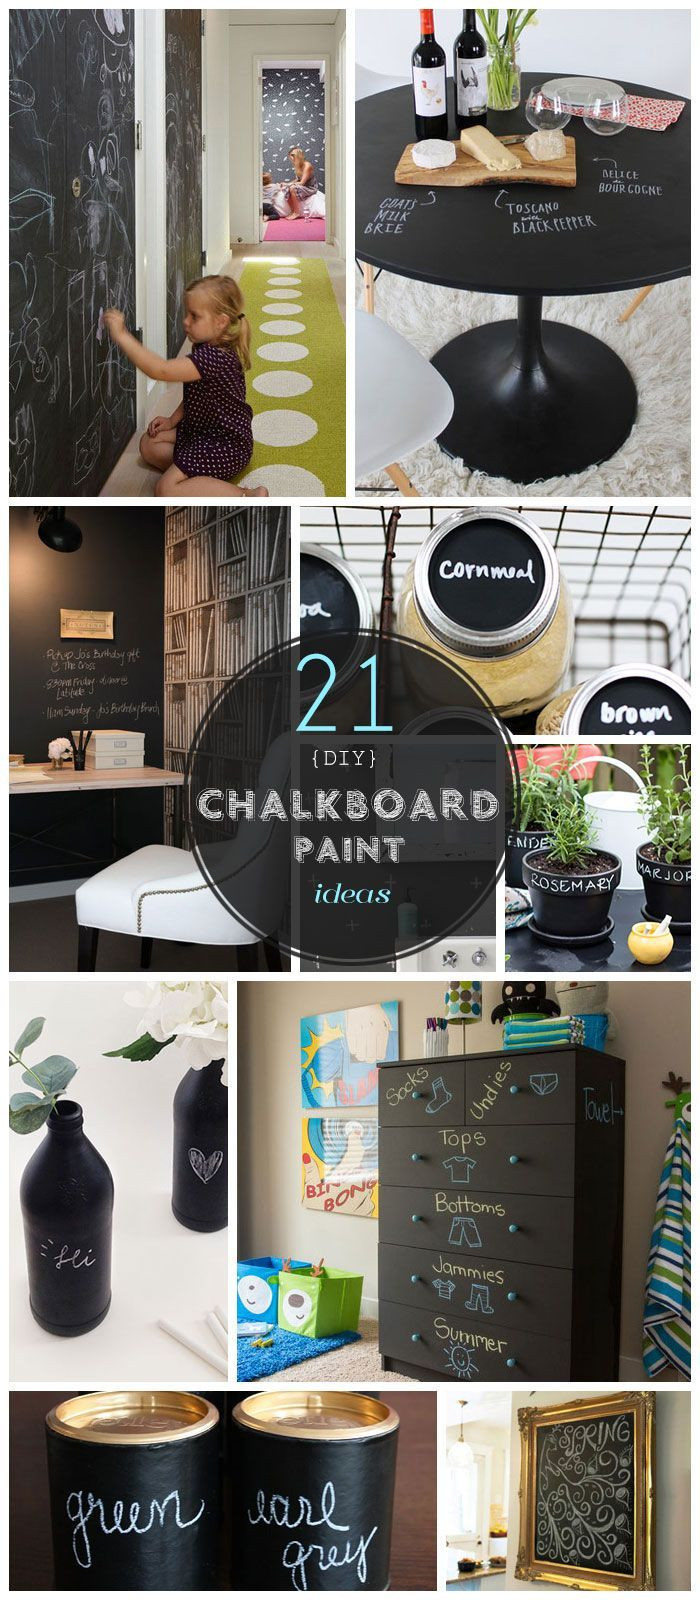 Best ideas about Chalk Paint DIY . Save or Pin Pic for 21 DIY Chalkboard Paint Ideas Now.